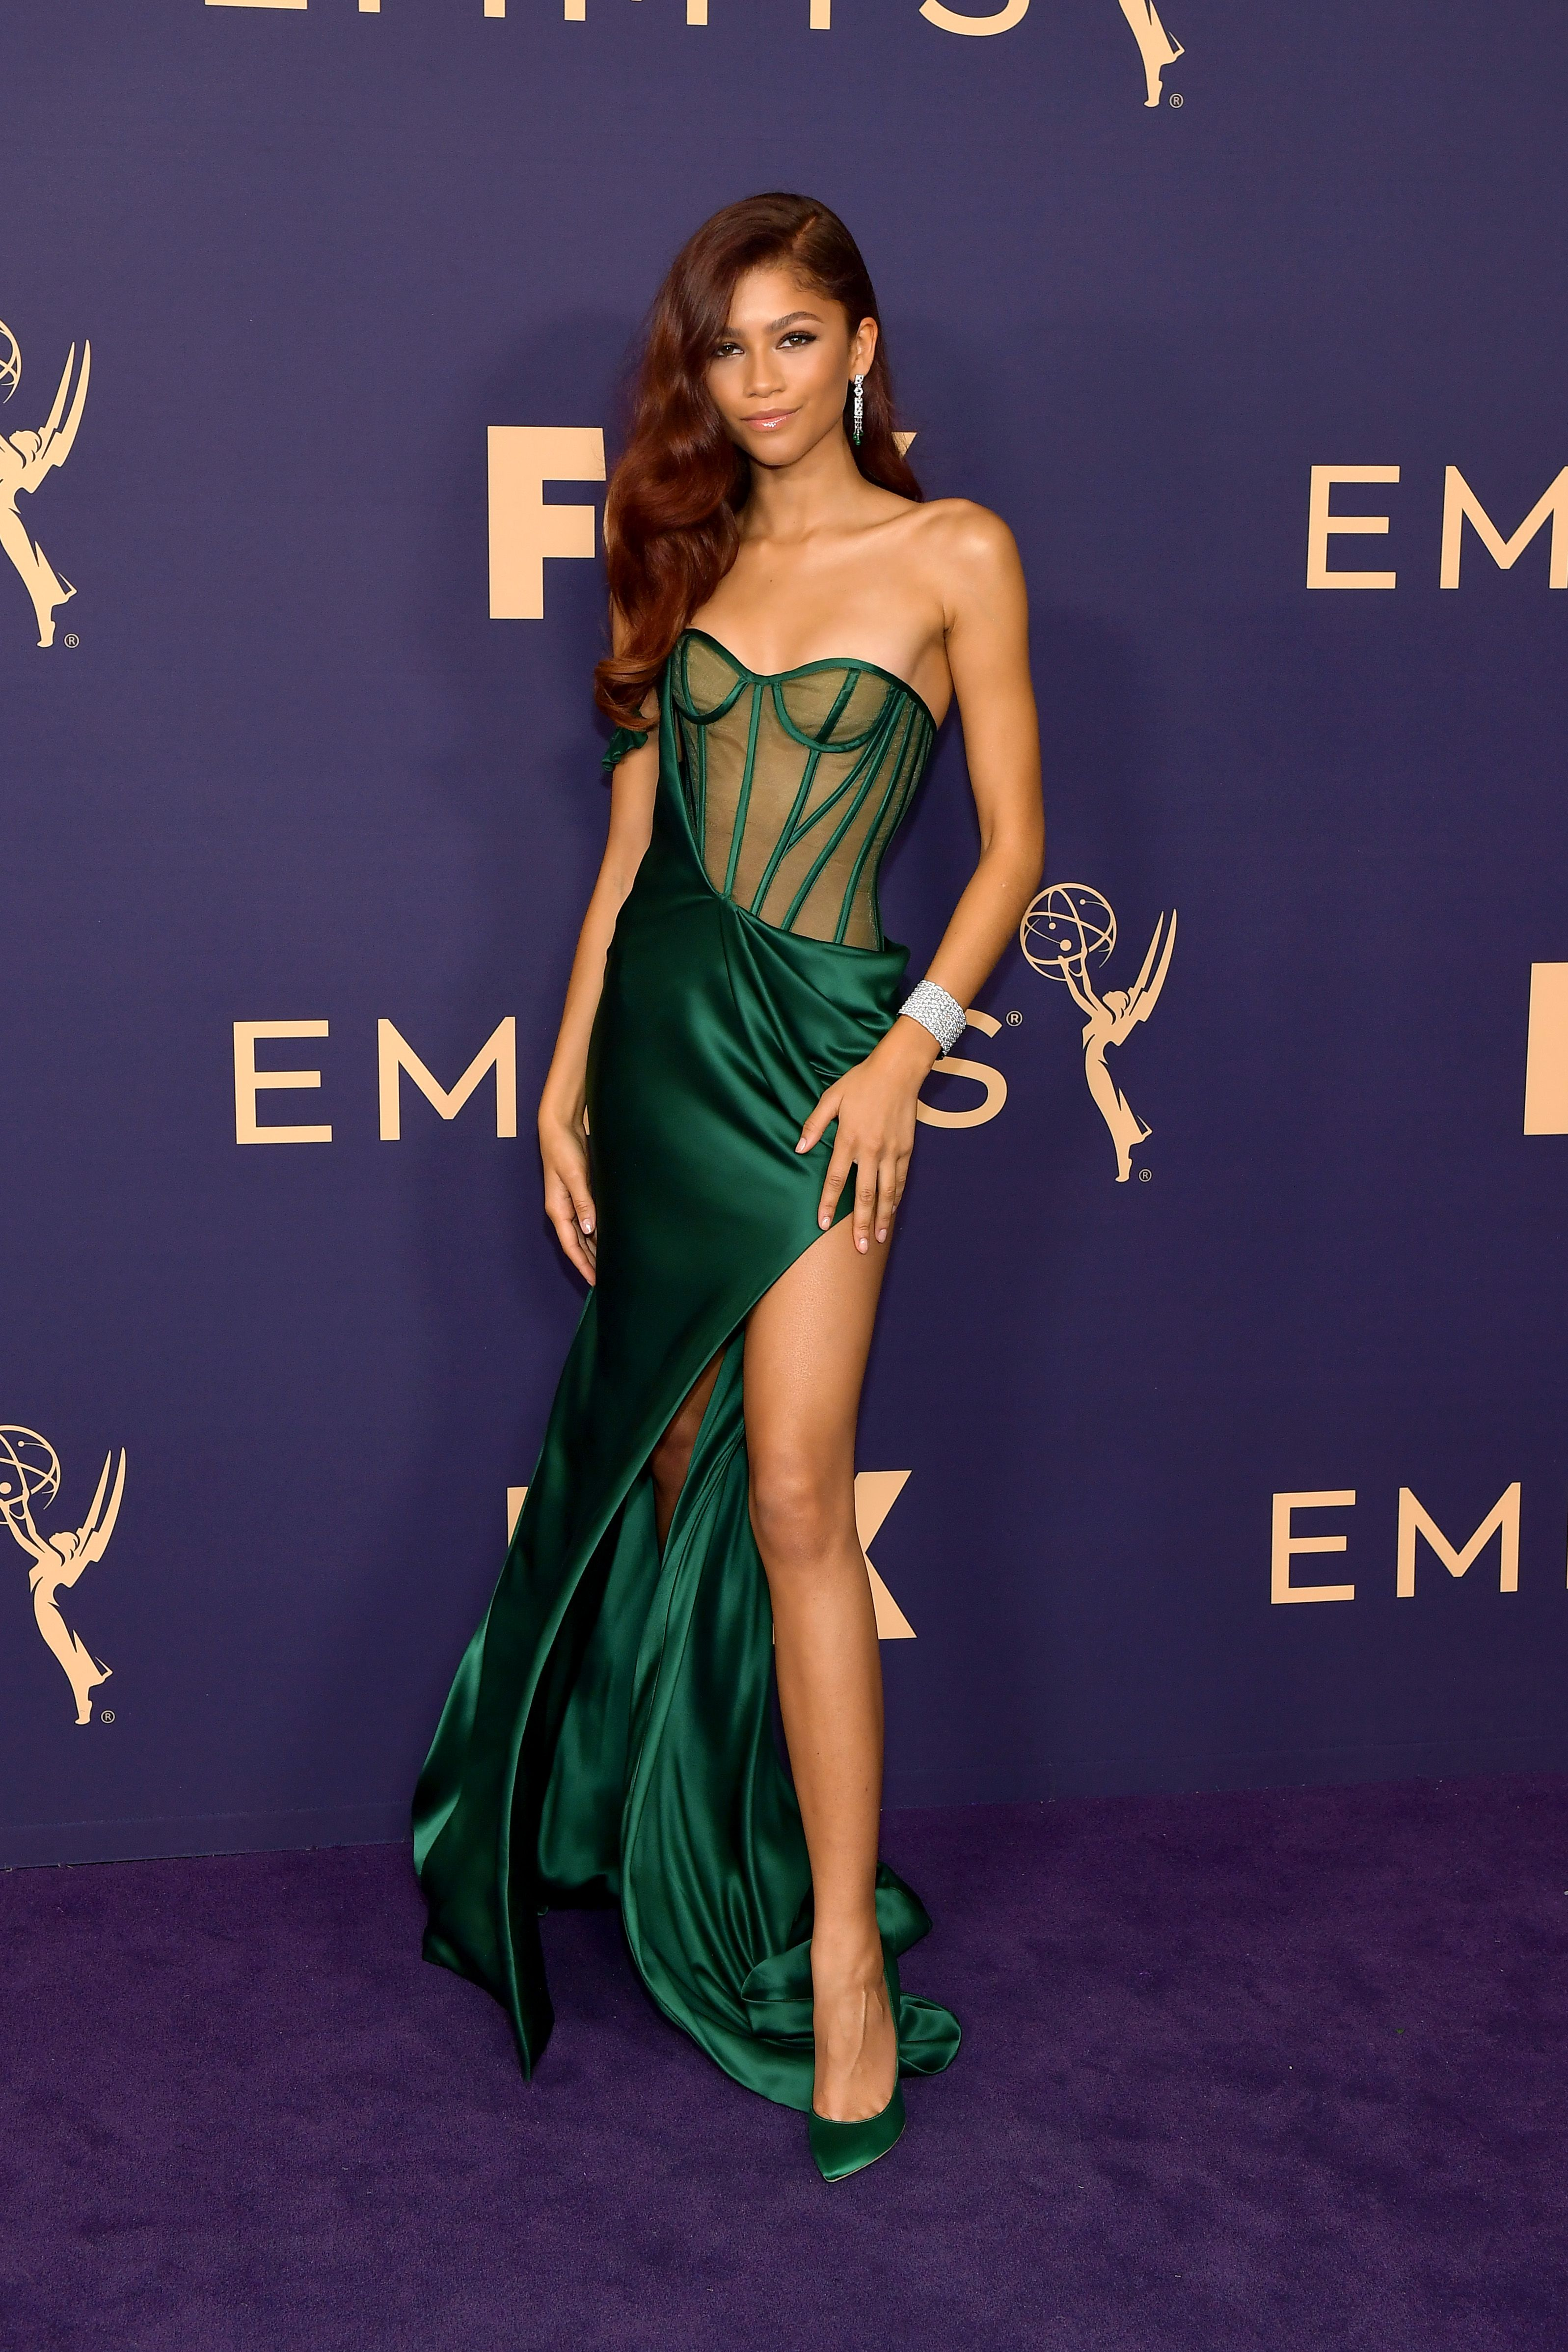 Zendaya wearing a green gown at a special event